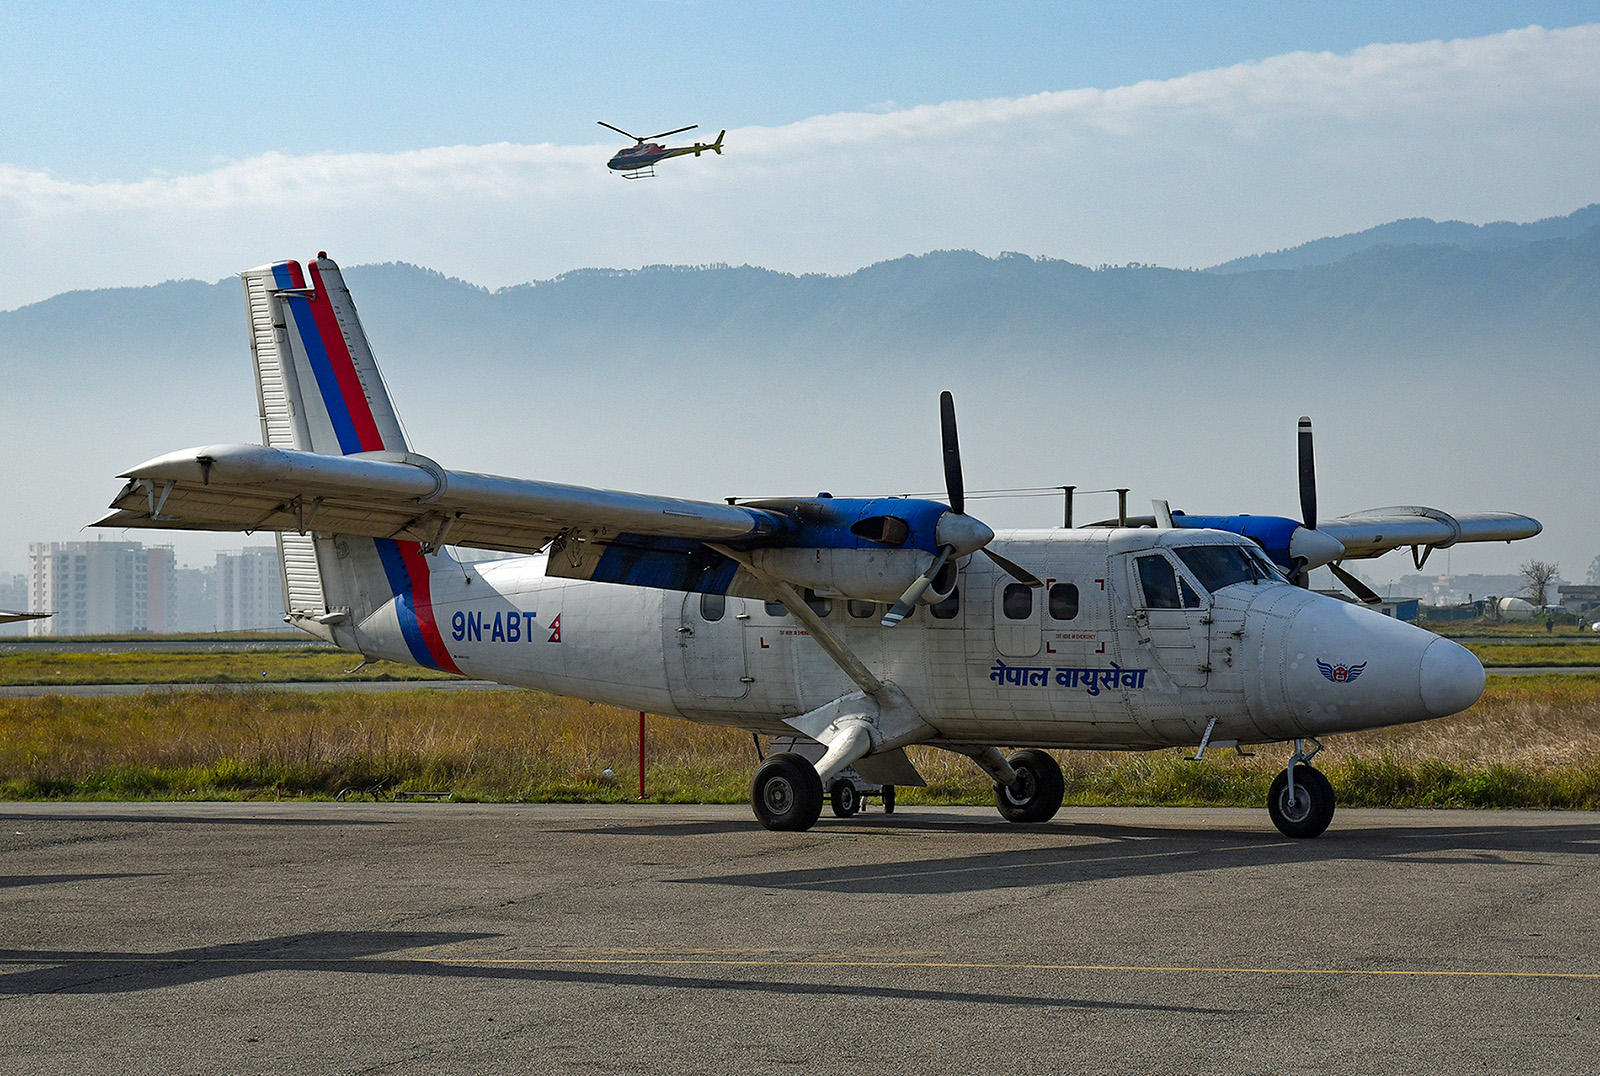 Twin Otter der Nepal Airlines.